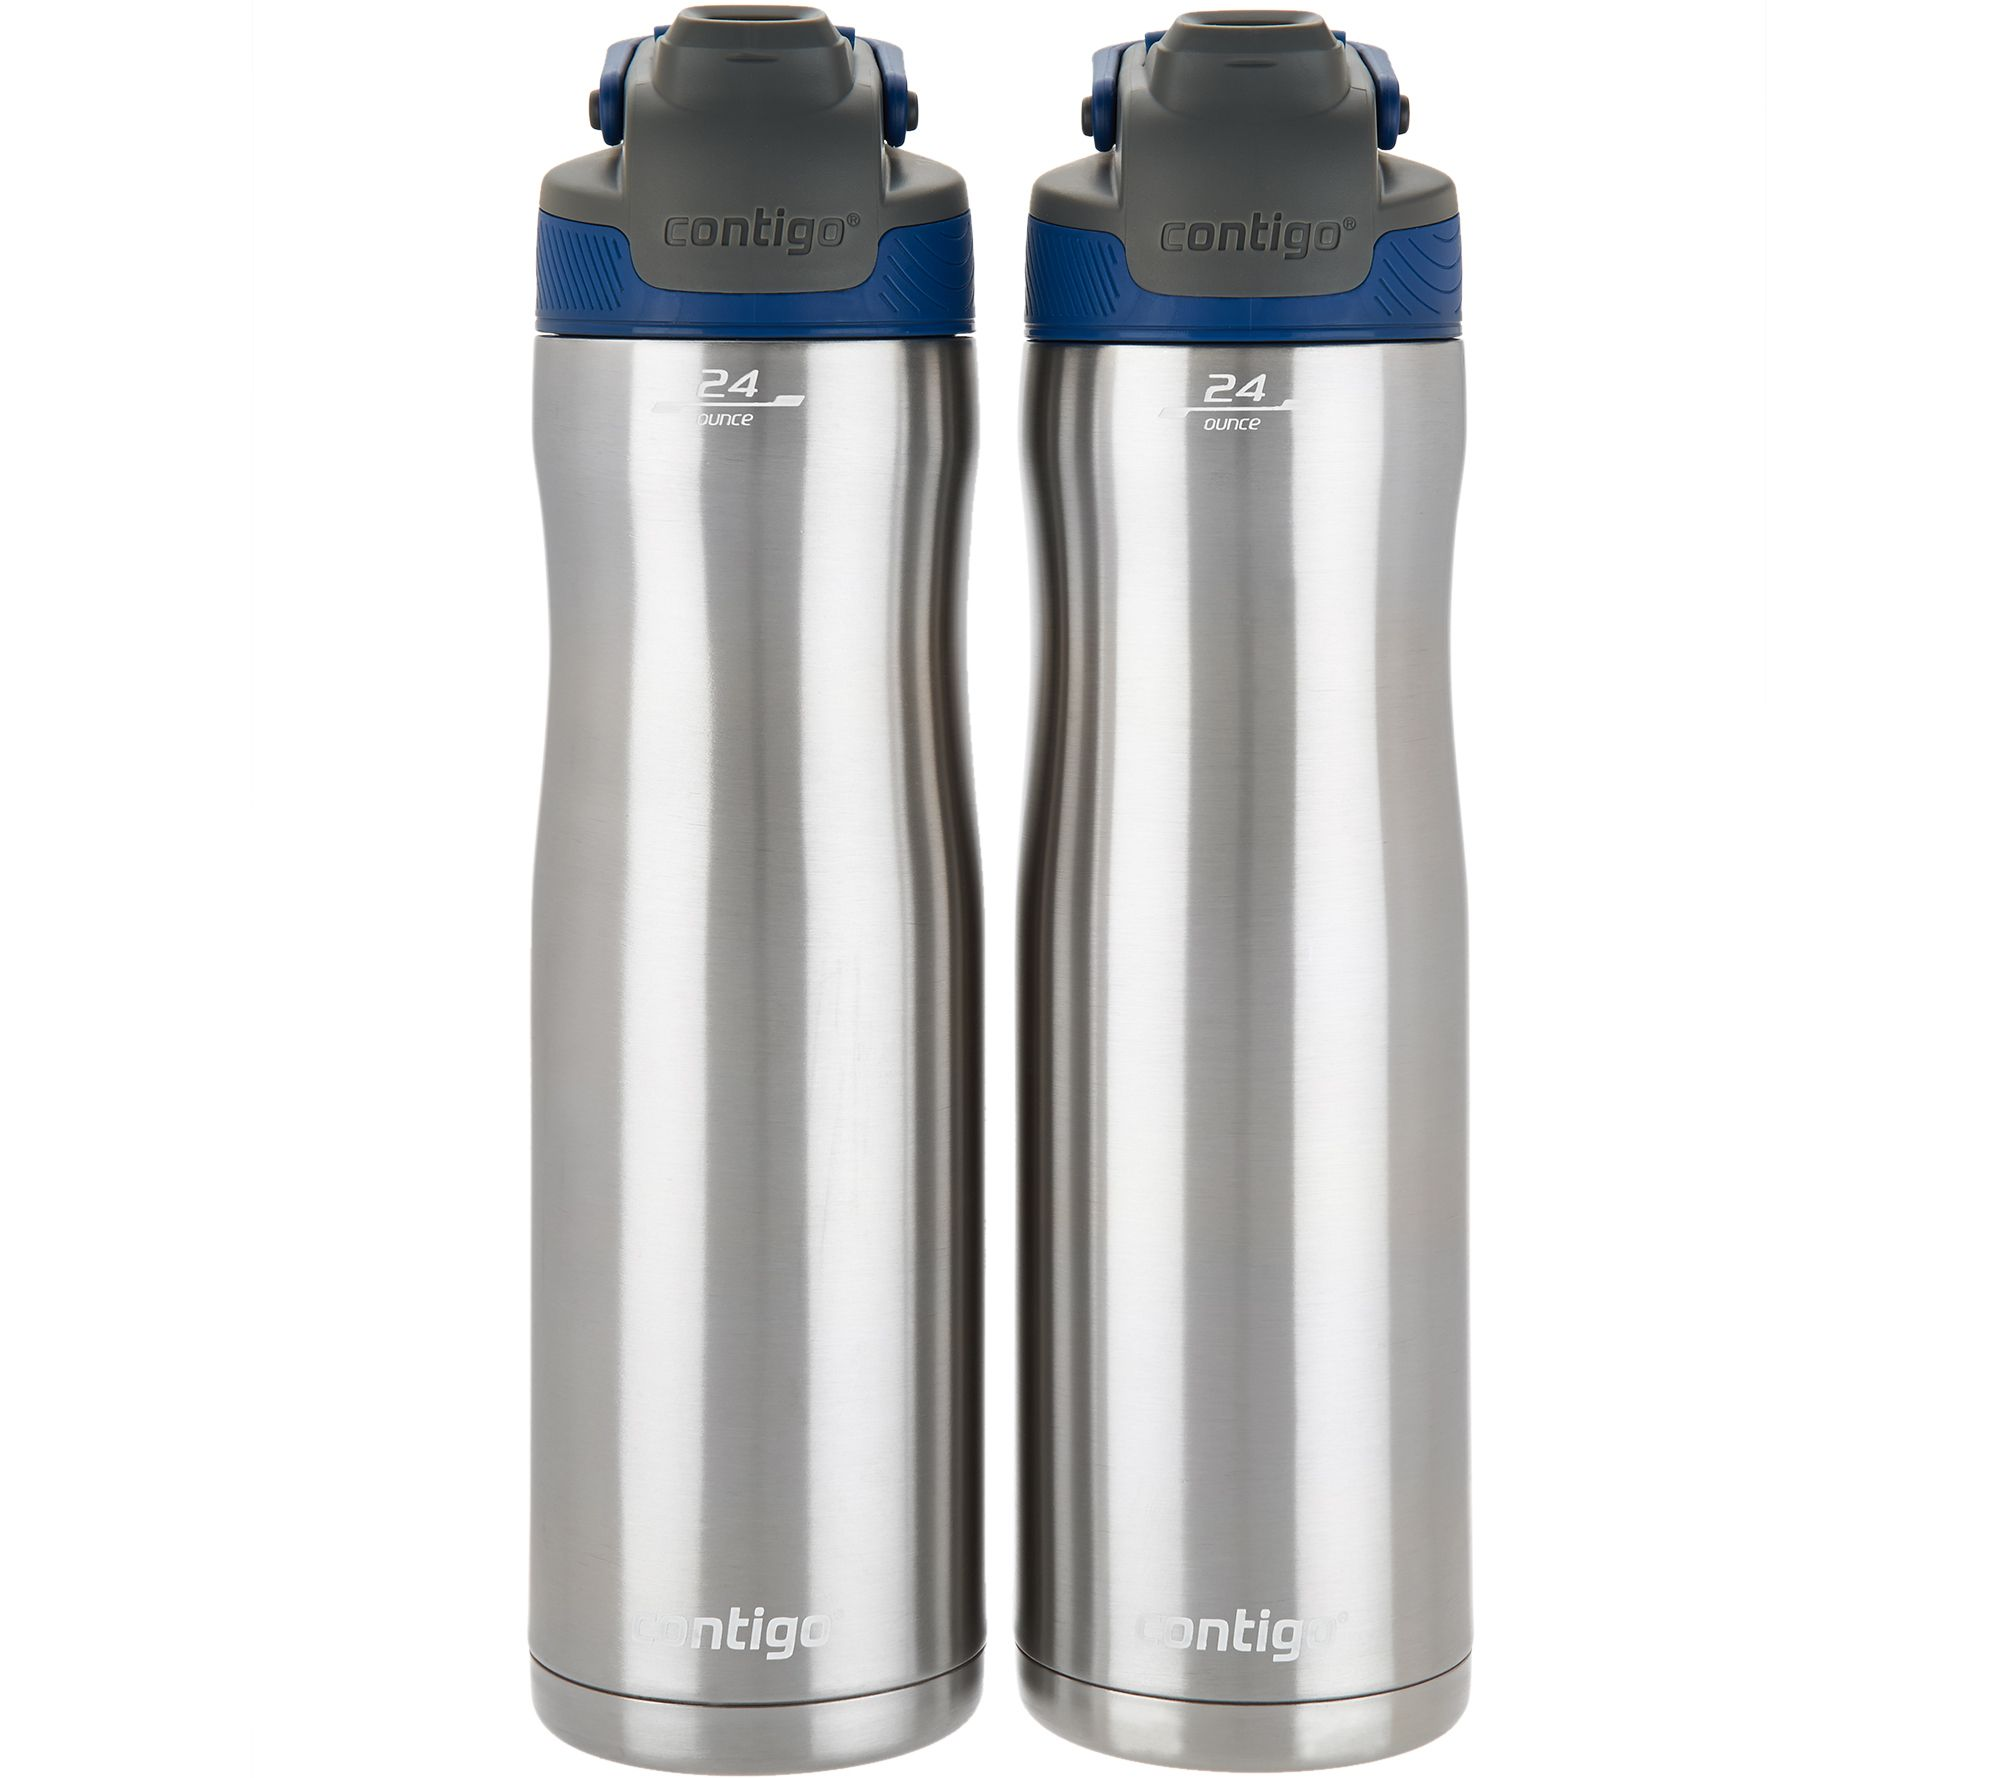 5b7ee0fec3 Contigo Set of 2 24oz. Autoseal Chill Stainless Steel Water Bottles - Page  1 — QVC.com